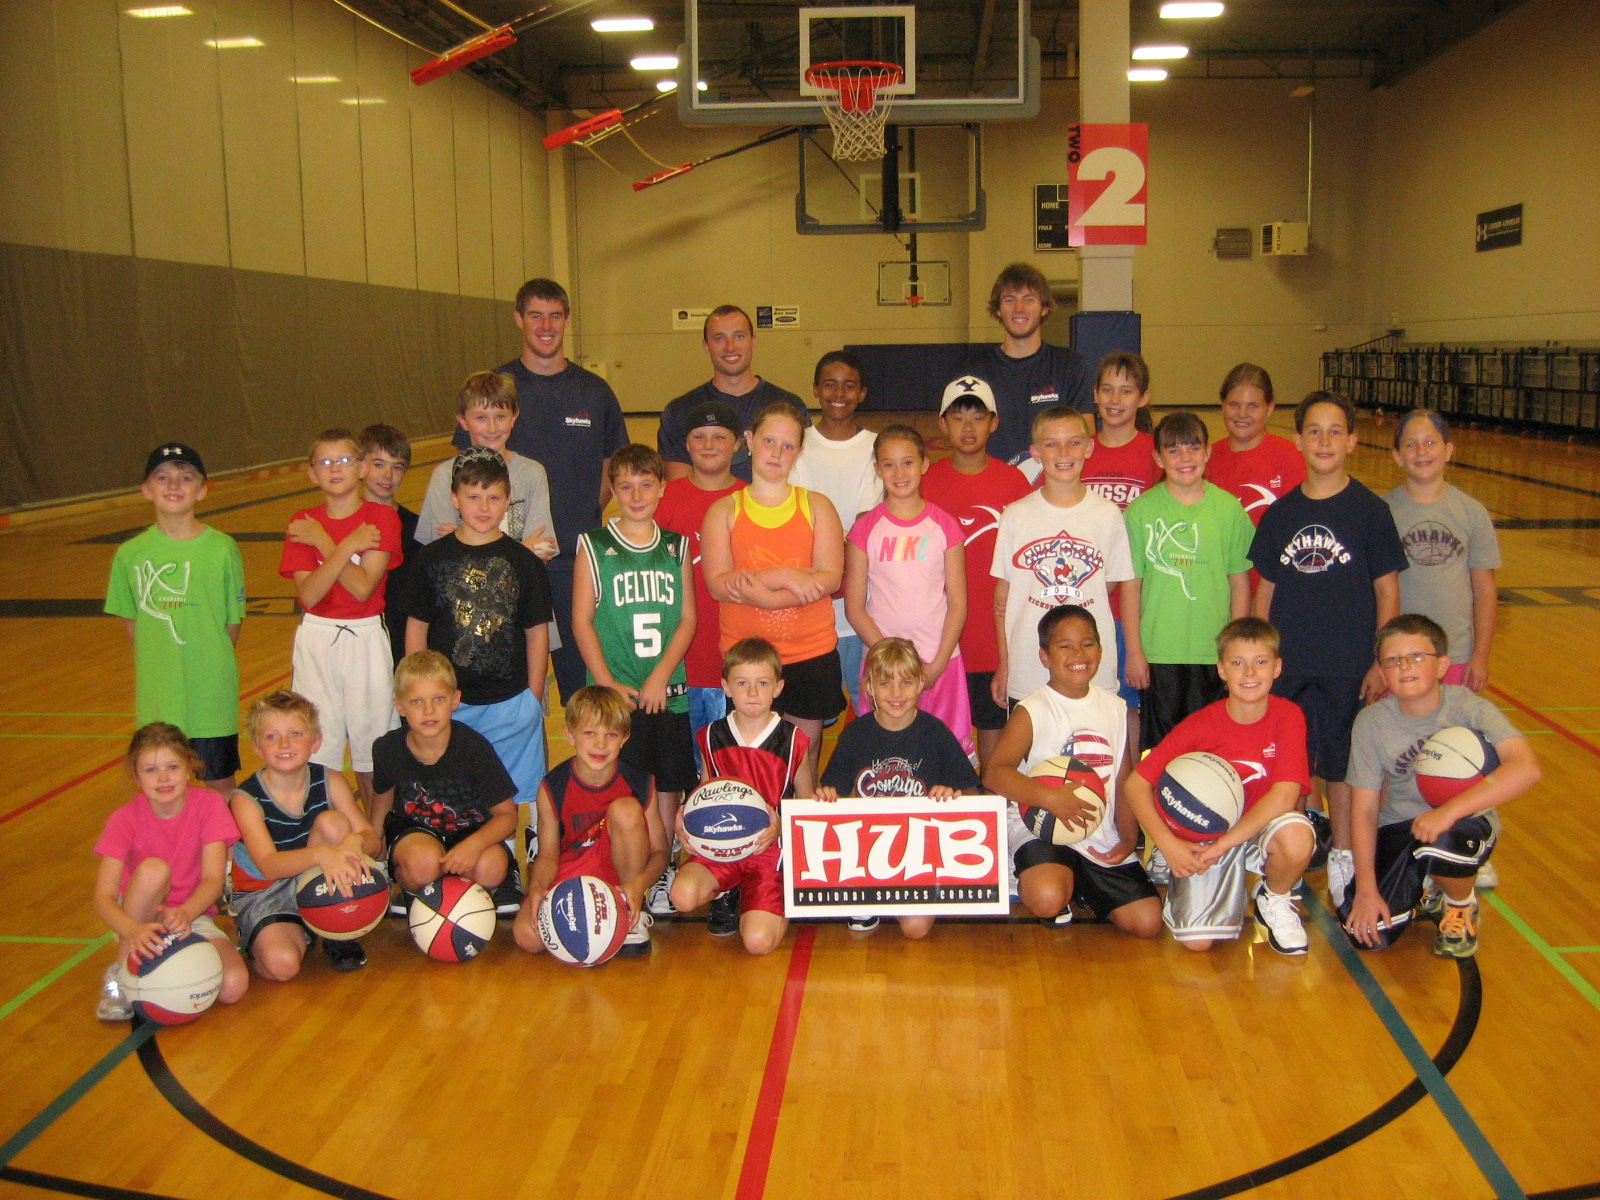 Summer Camp HUB Sports Center Spokane Liberty Lake Basketball